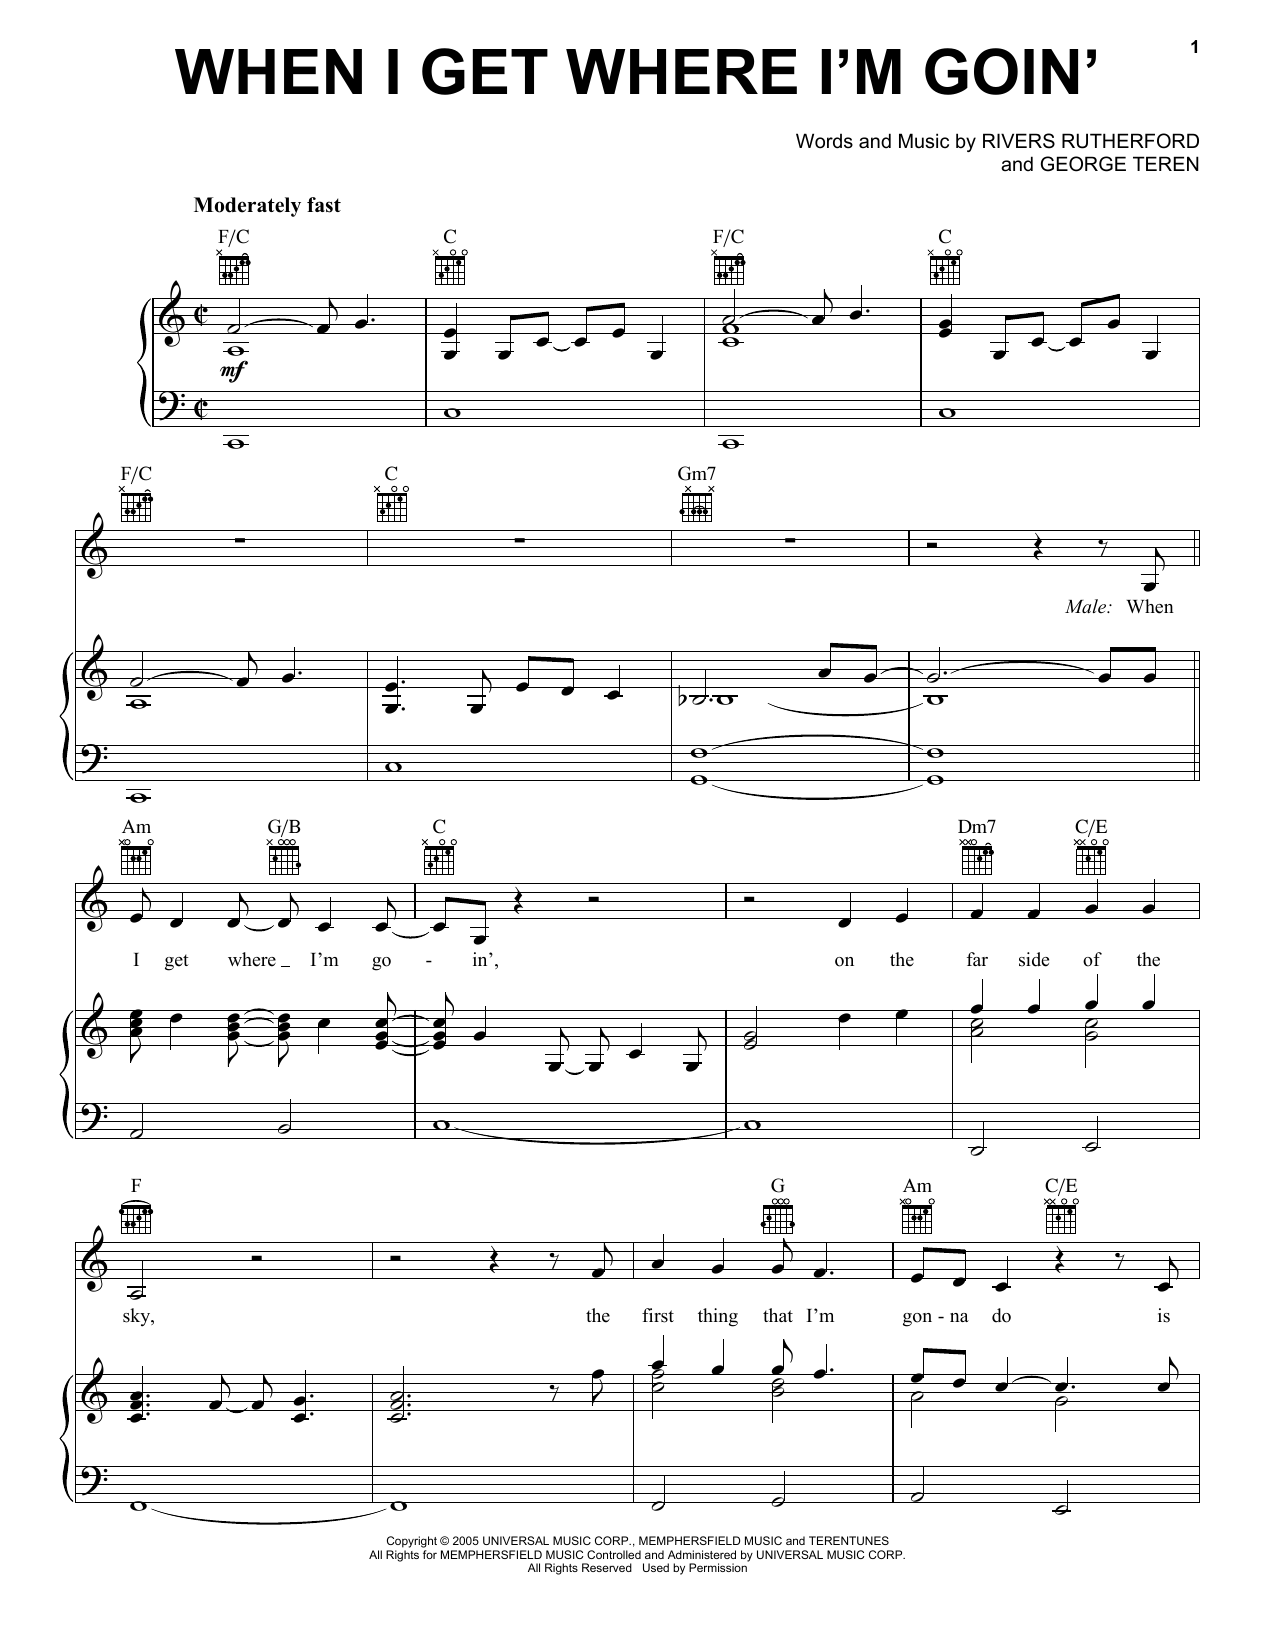 Brad Paisley featuring Dolly Parton When I Get Where I'm Goin' sheet music notes and chords. Download Printable PDF.